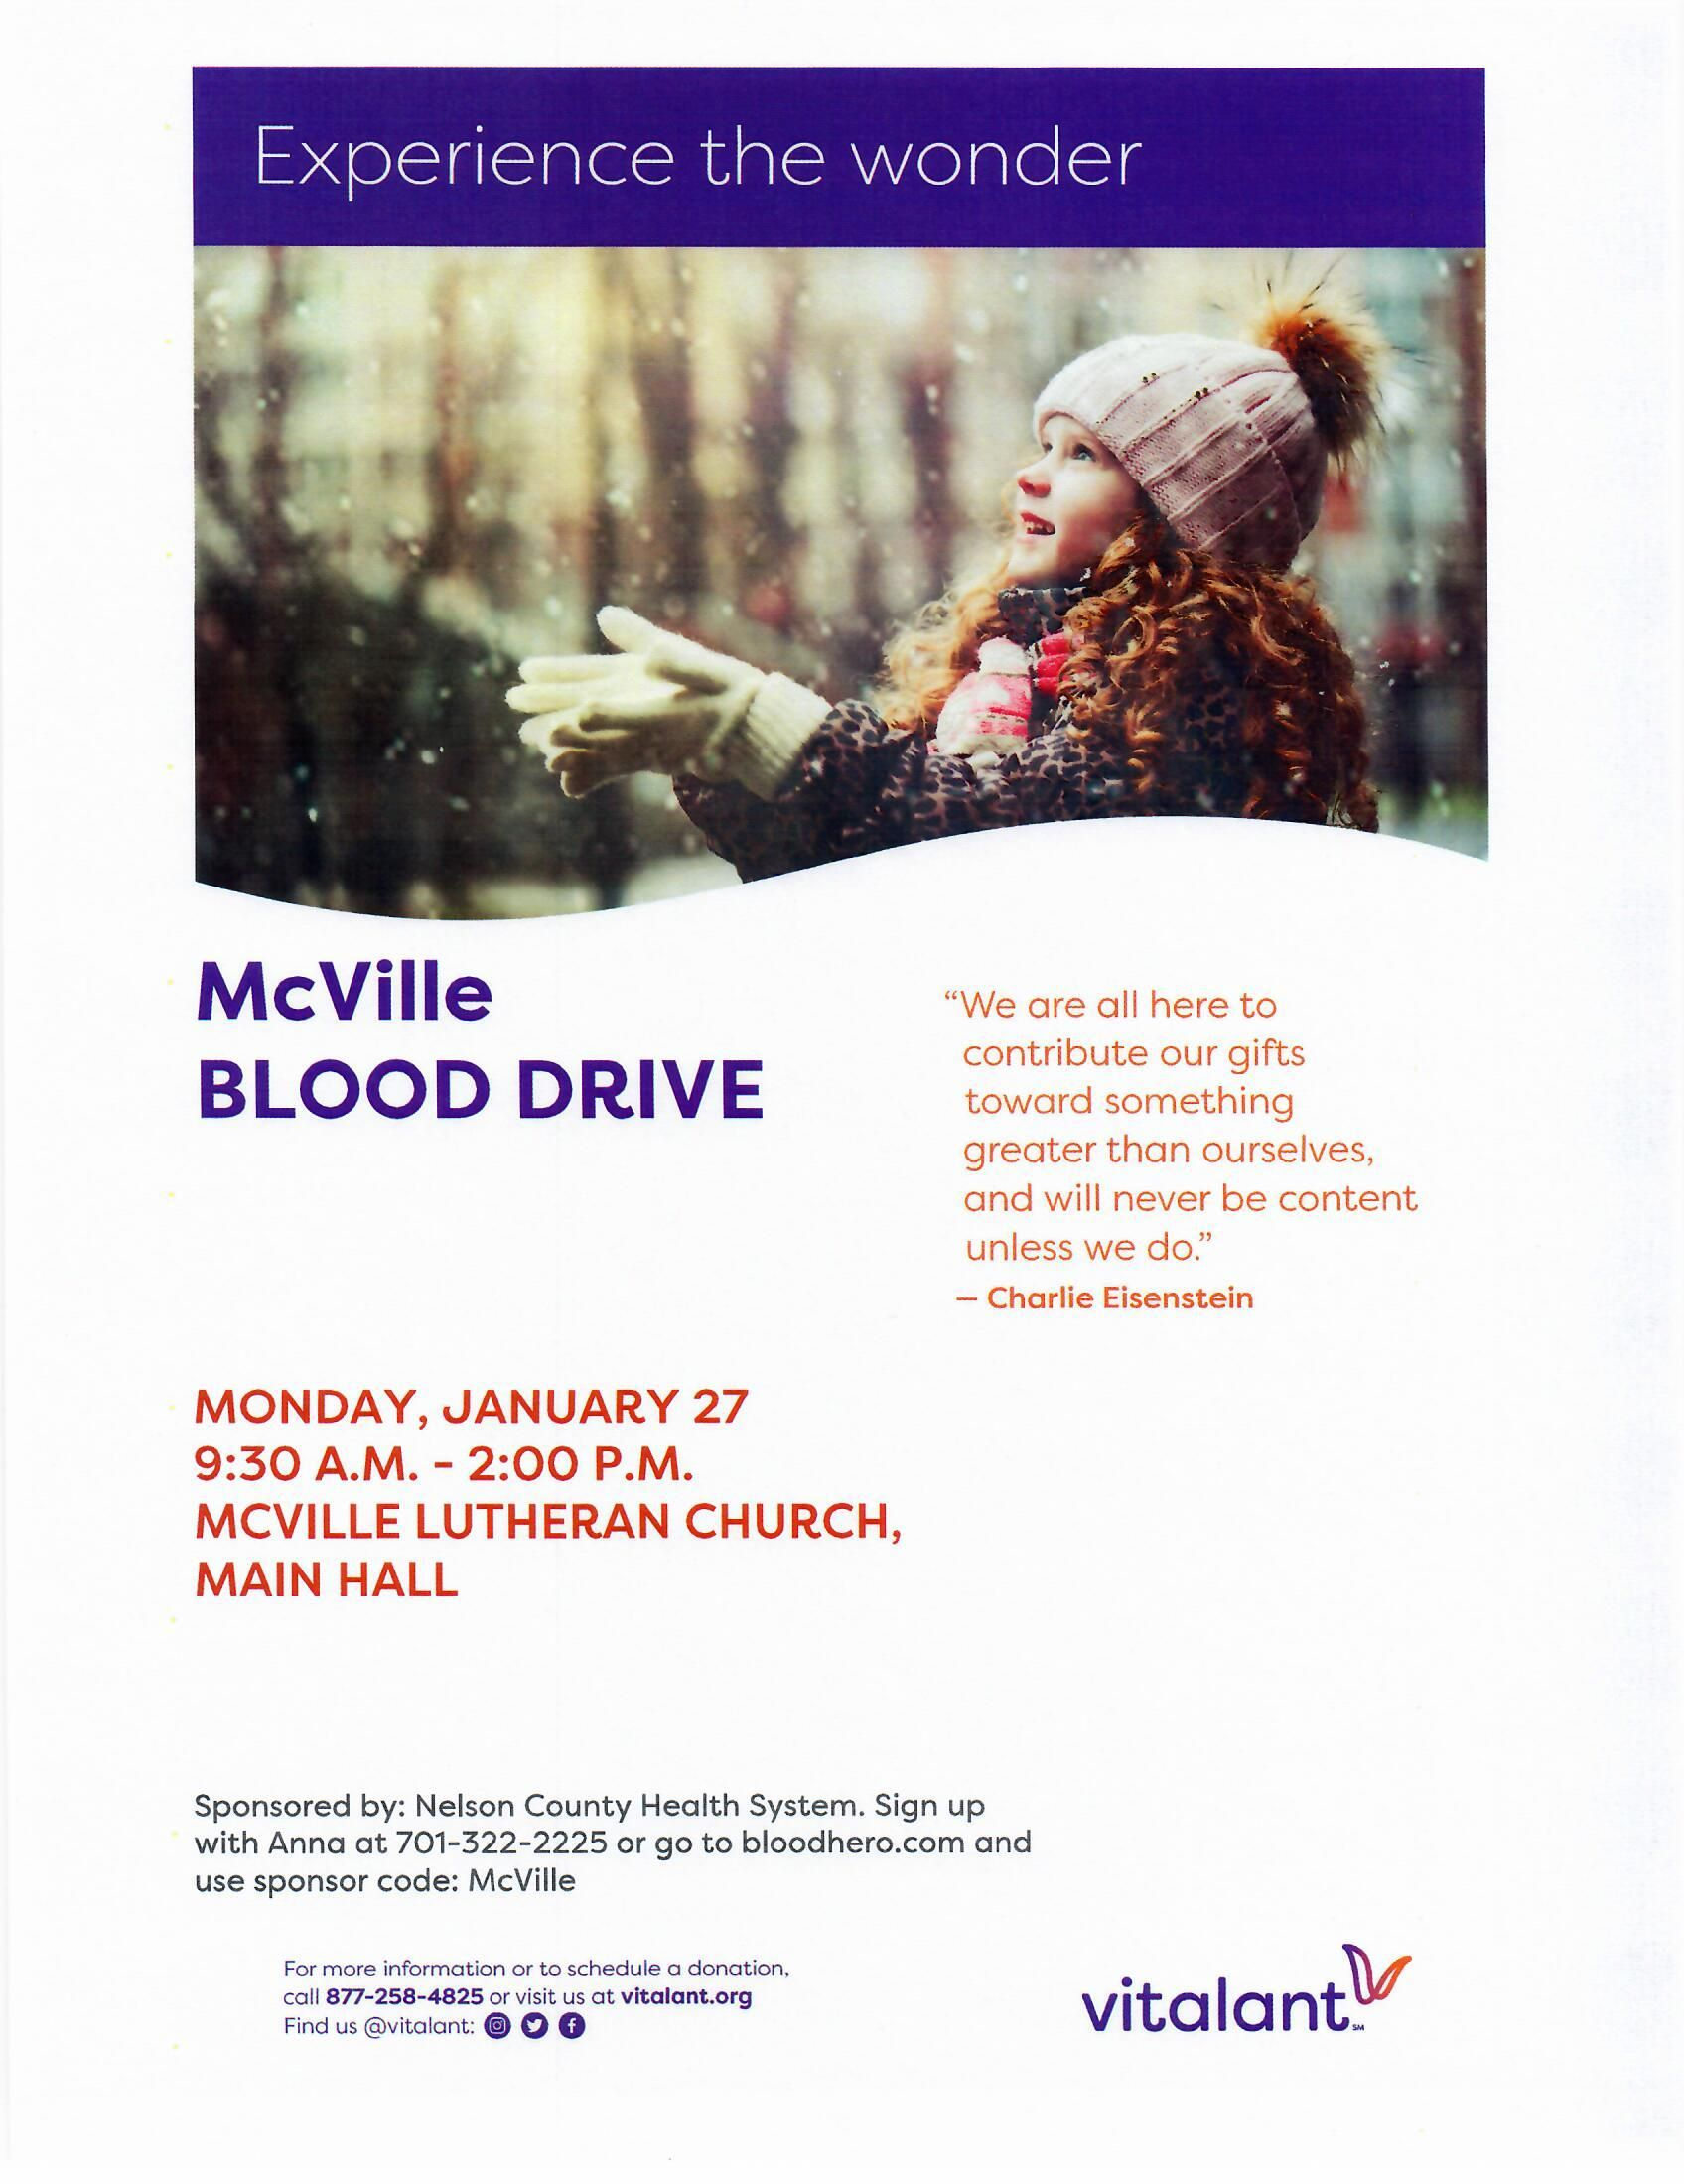 NCHS Blood Drive